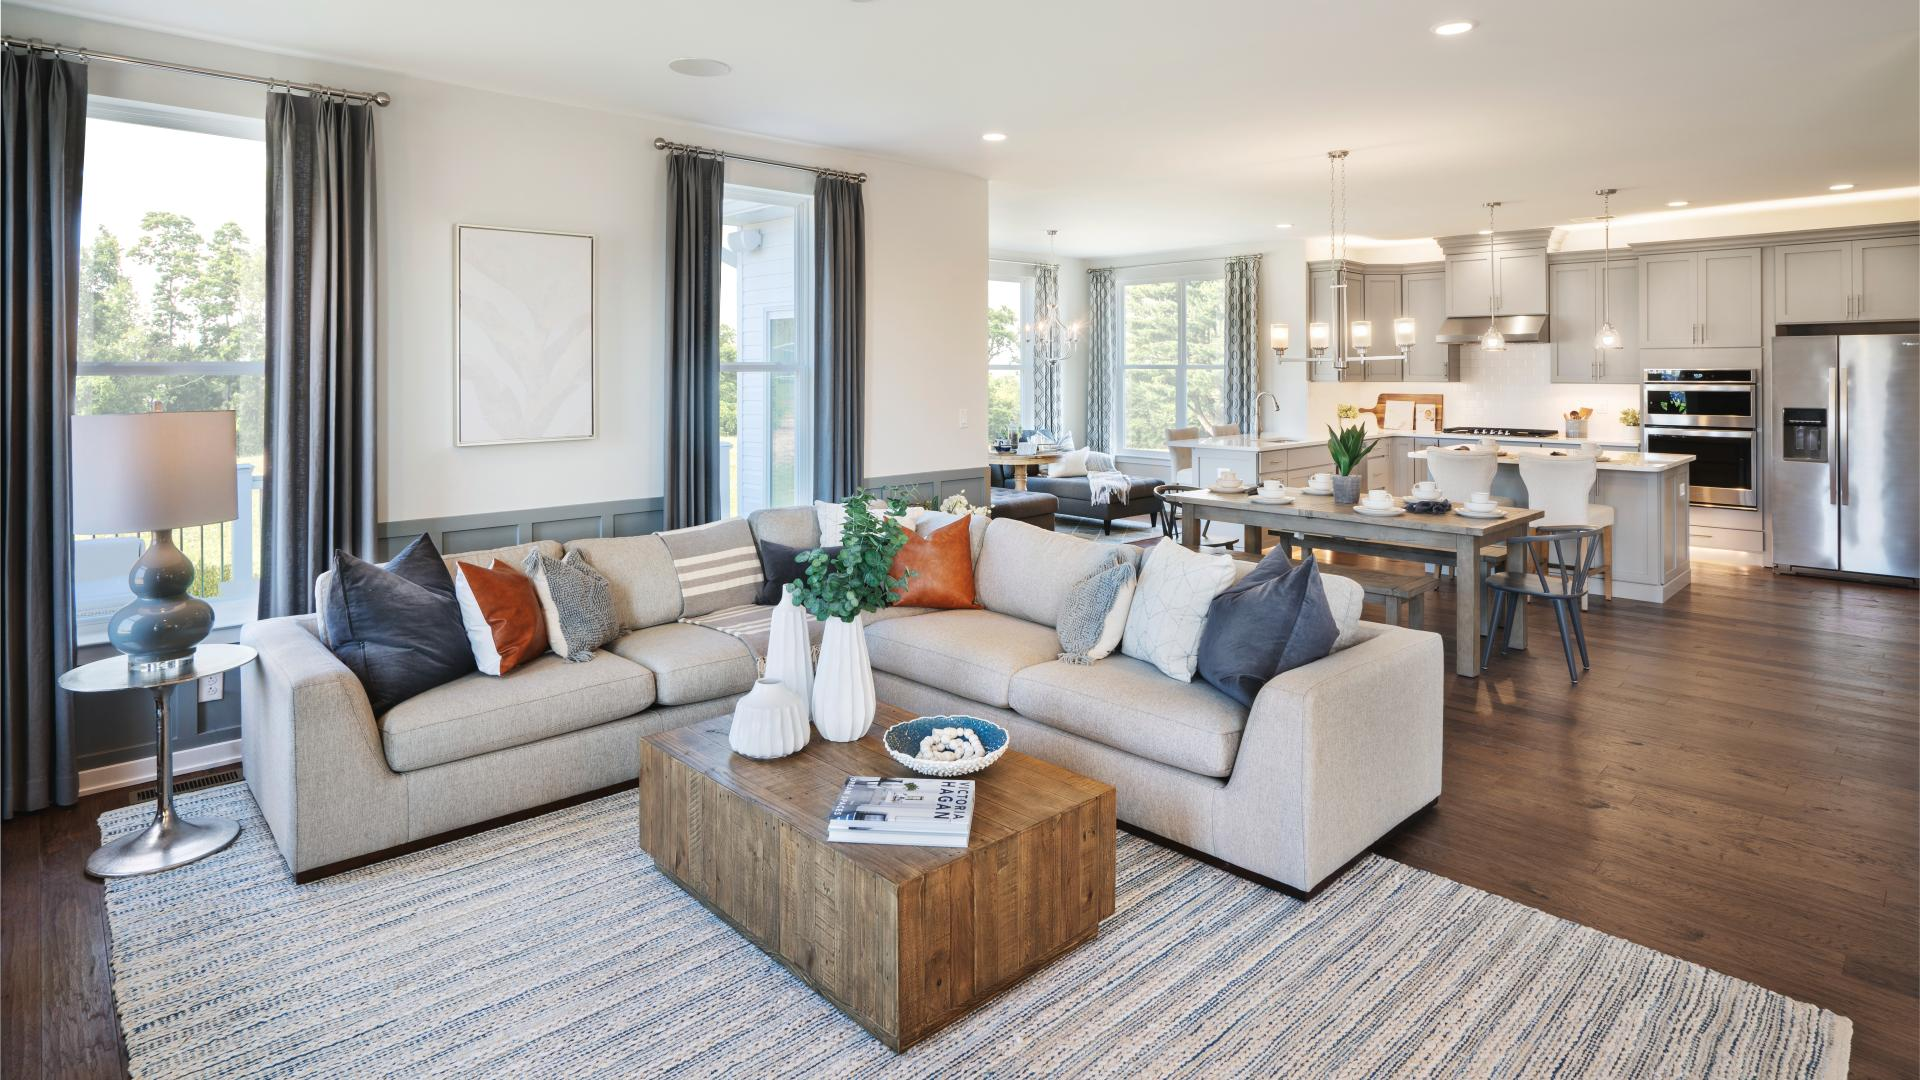 Home designs with over 2,800 square feet of living space